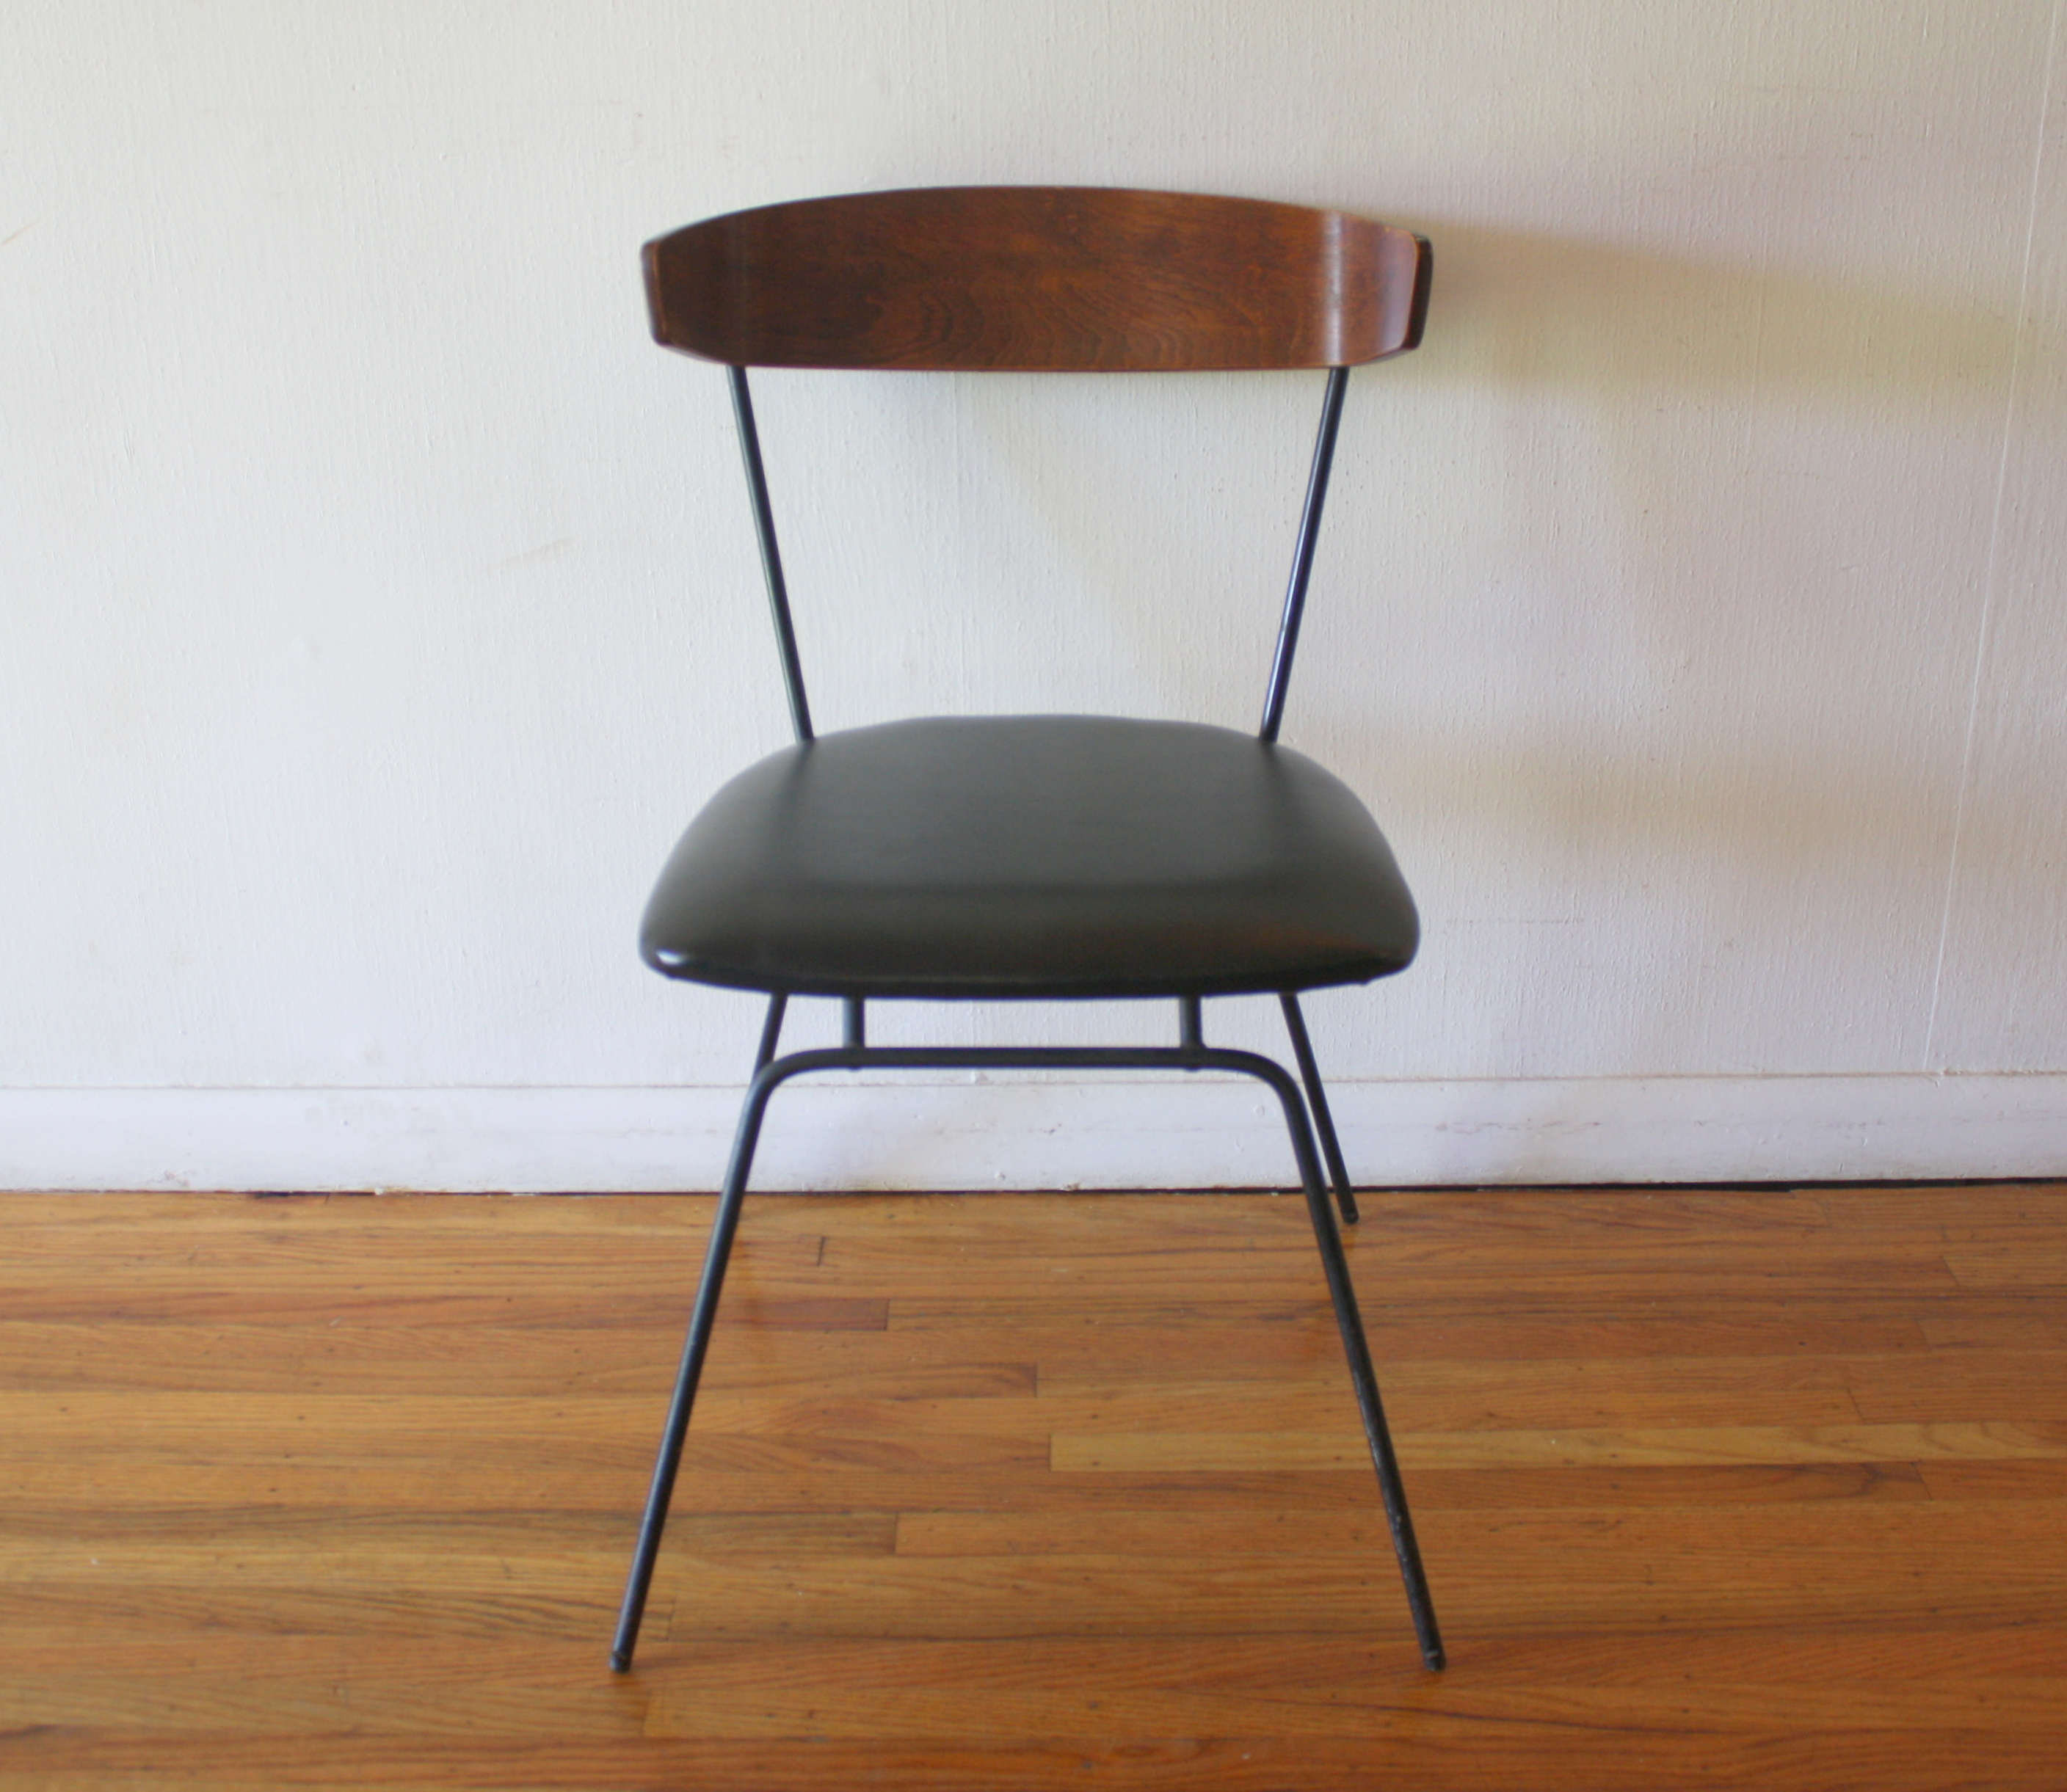 Paul Mccobb Chairs Mid Century Modern Chair By Paul Mccobb Picked Vintage